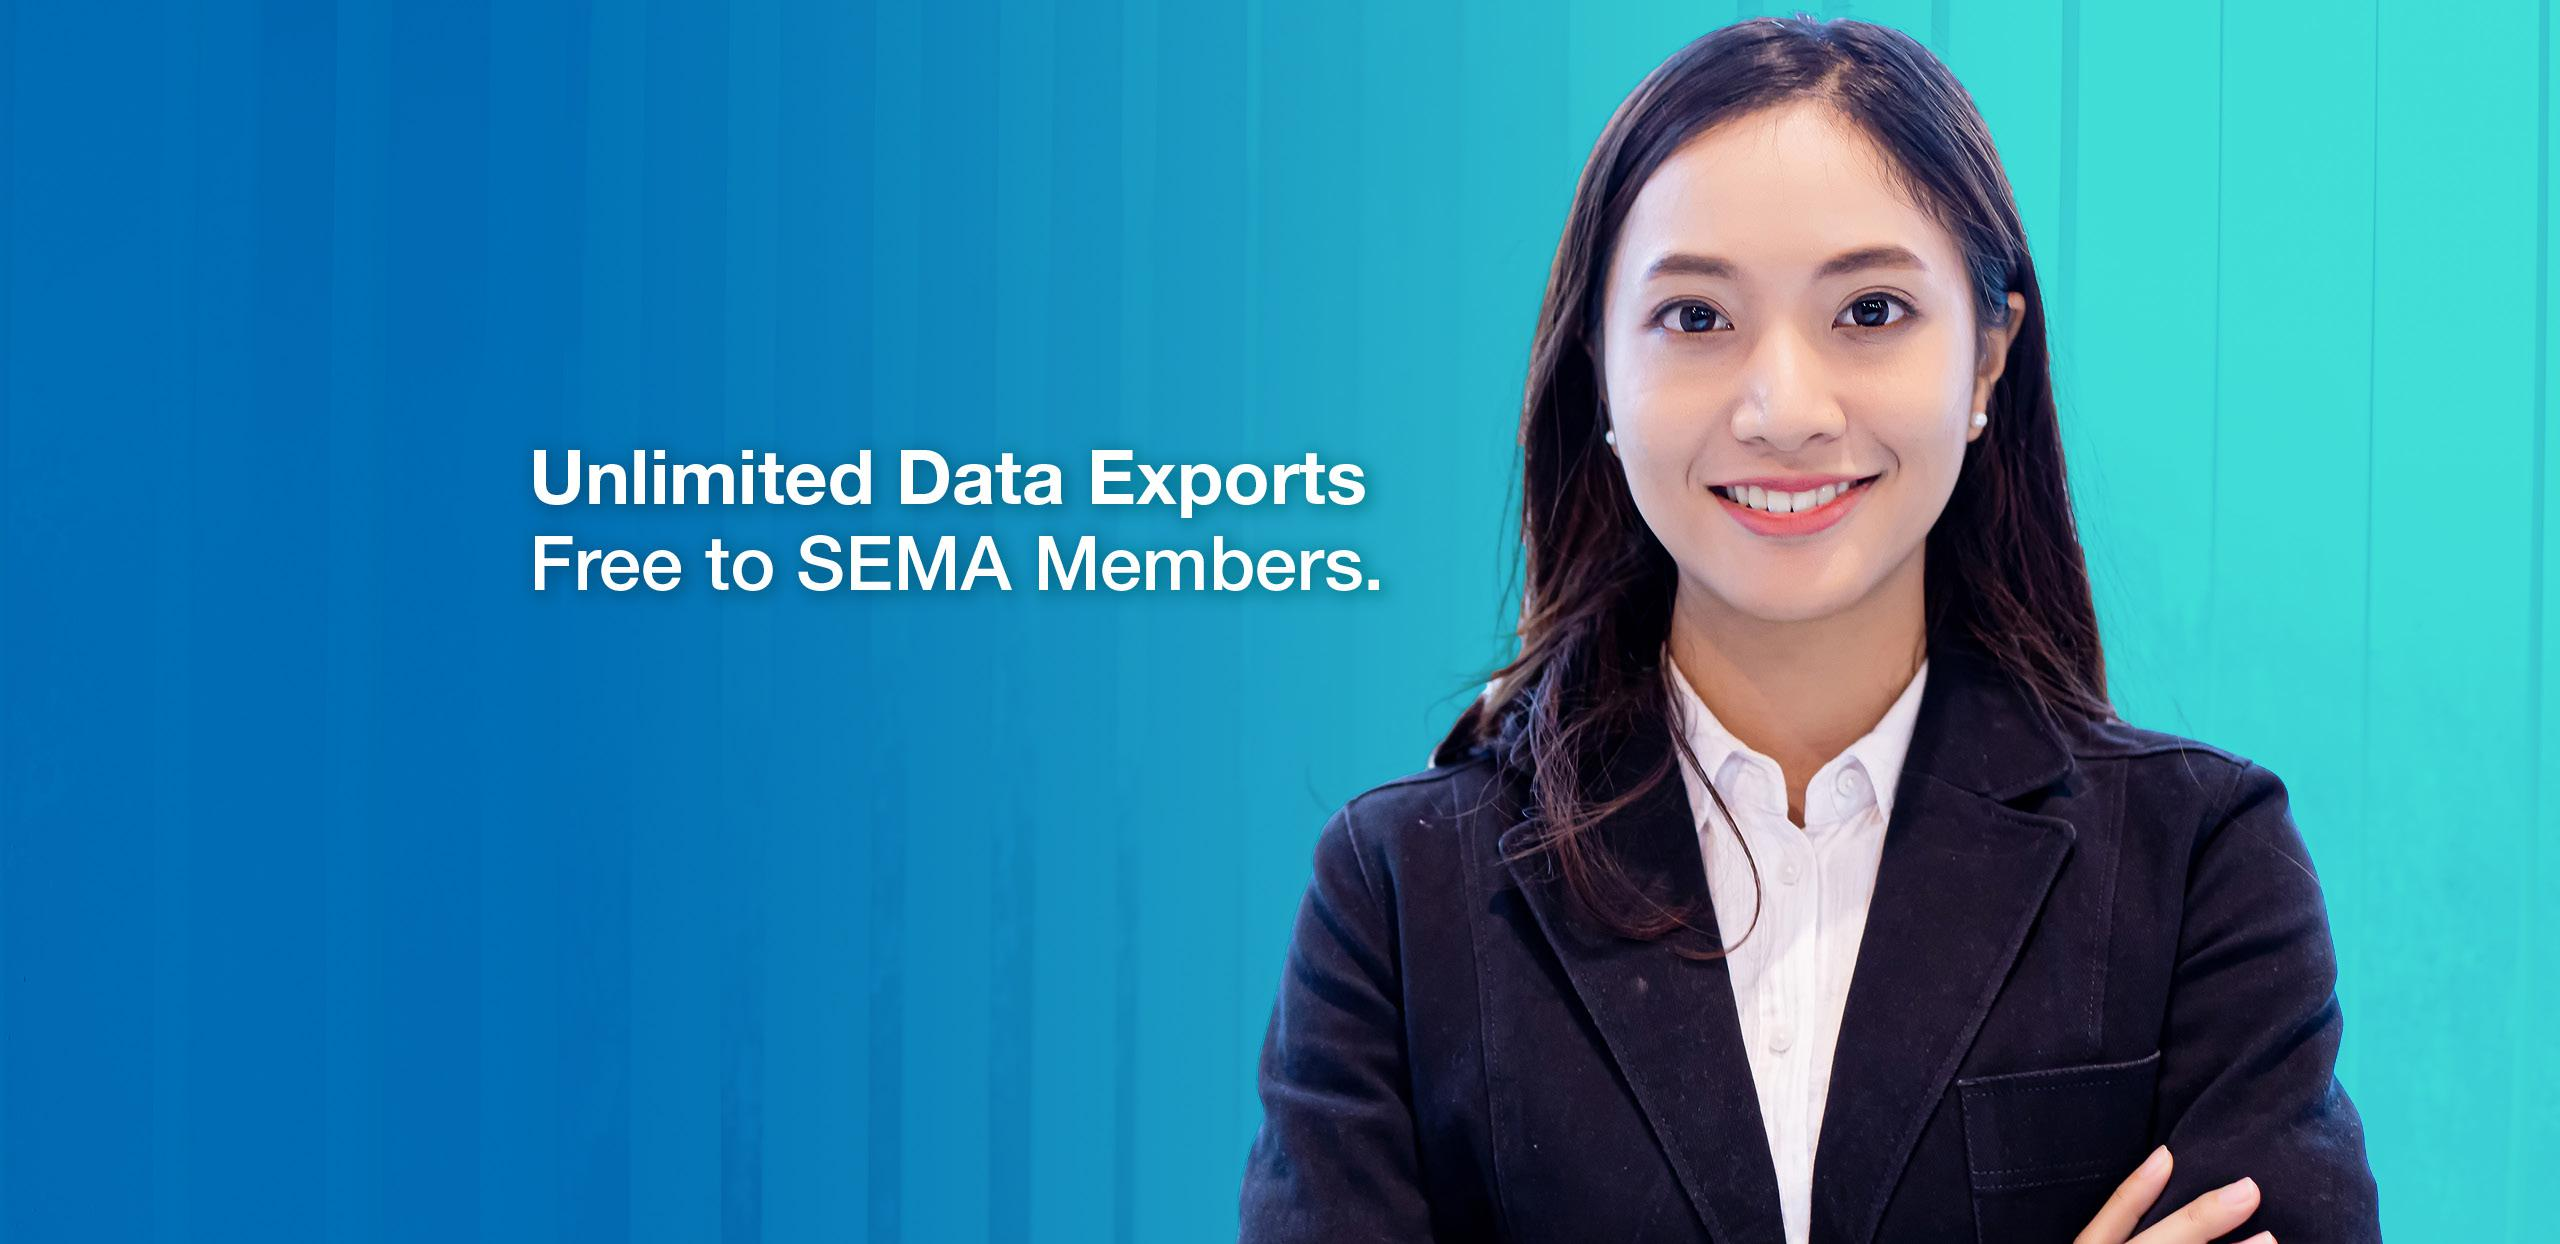 SEMA DATA Unlimited Data Exports to SEMA Members